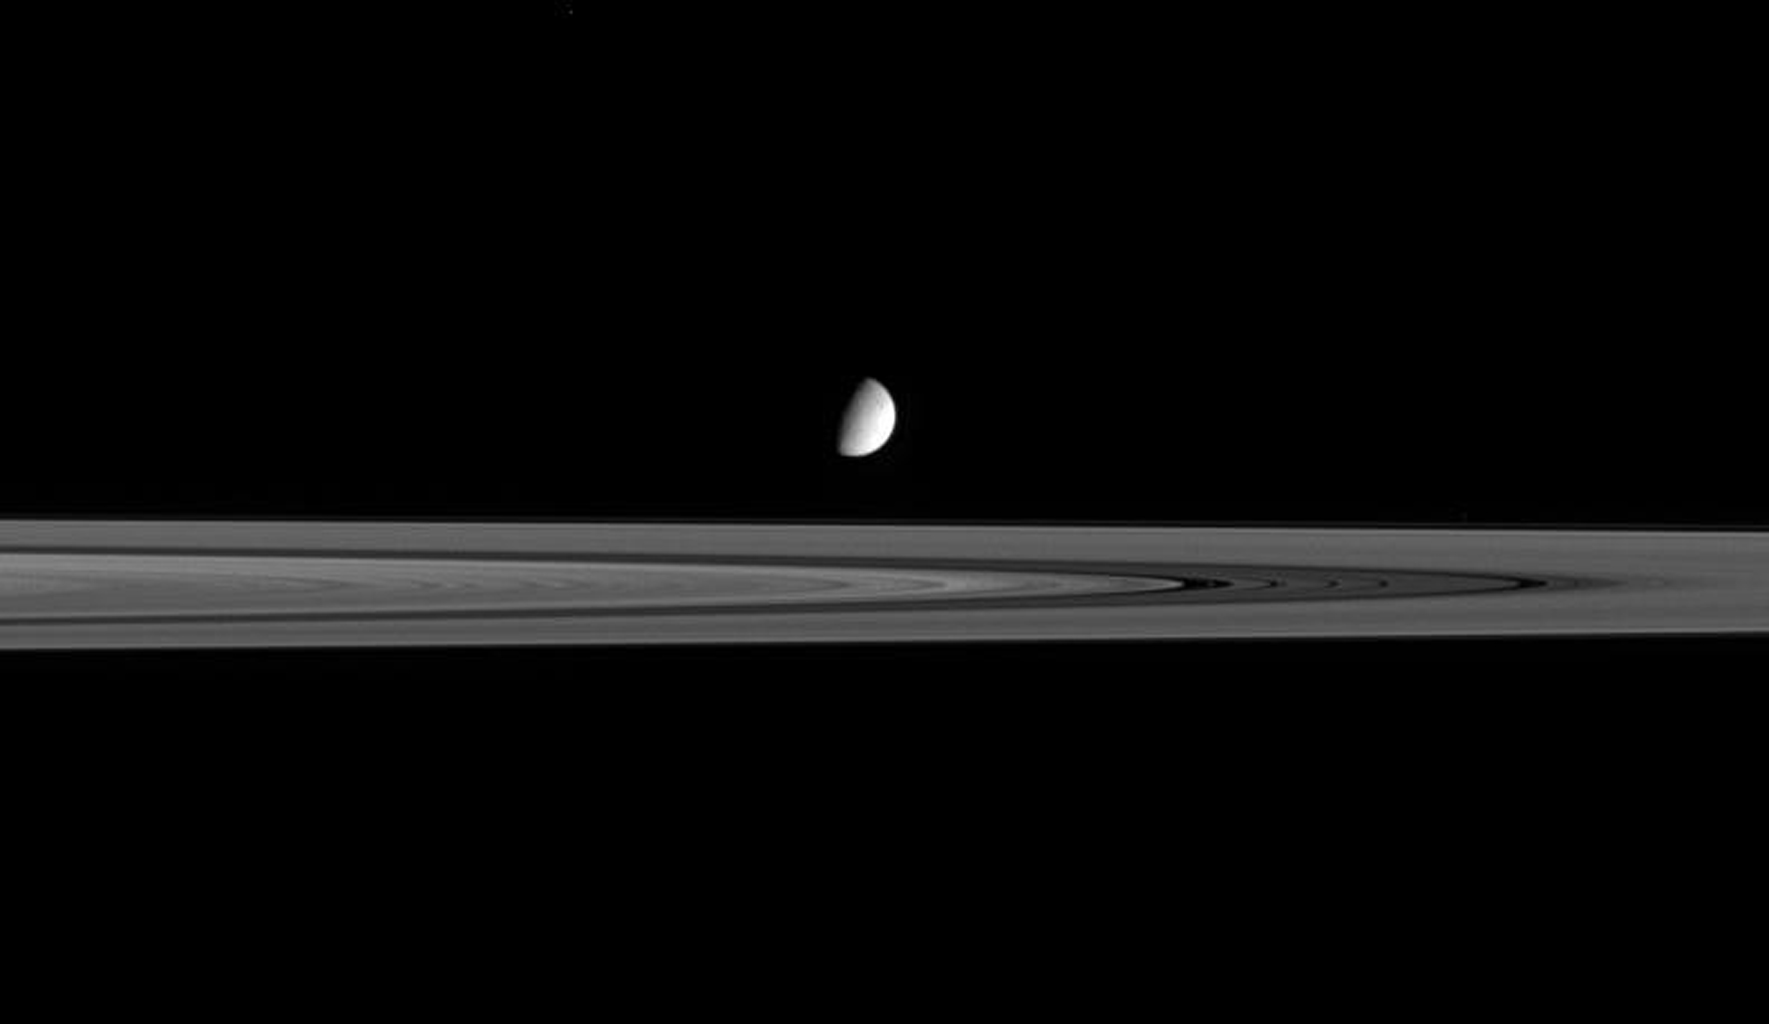 The moon Enceladus seems to hover above the outer reaches of Saturn's B ring. This image was taken in visible light with NASA's Cassini spacecraft's narrow-angle camera on Sept. 15, 2005.